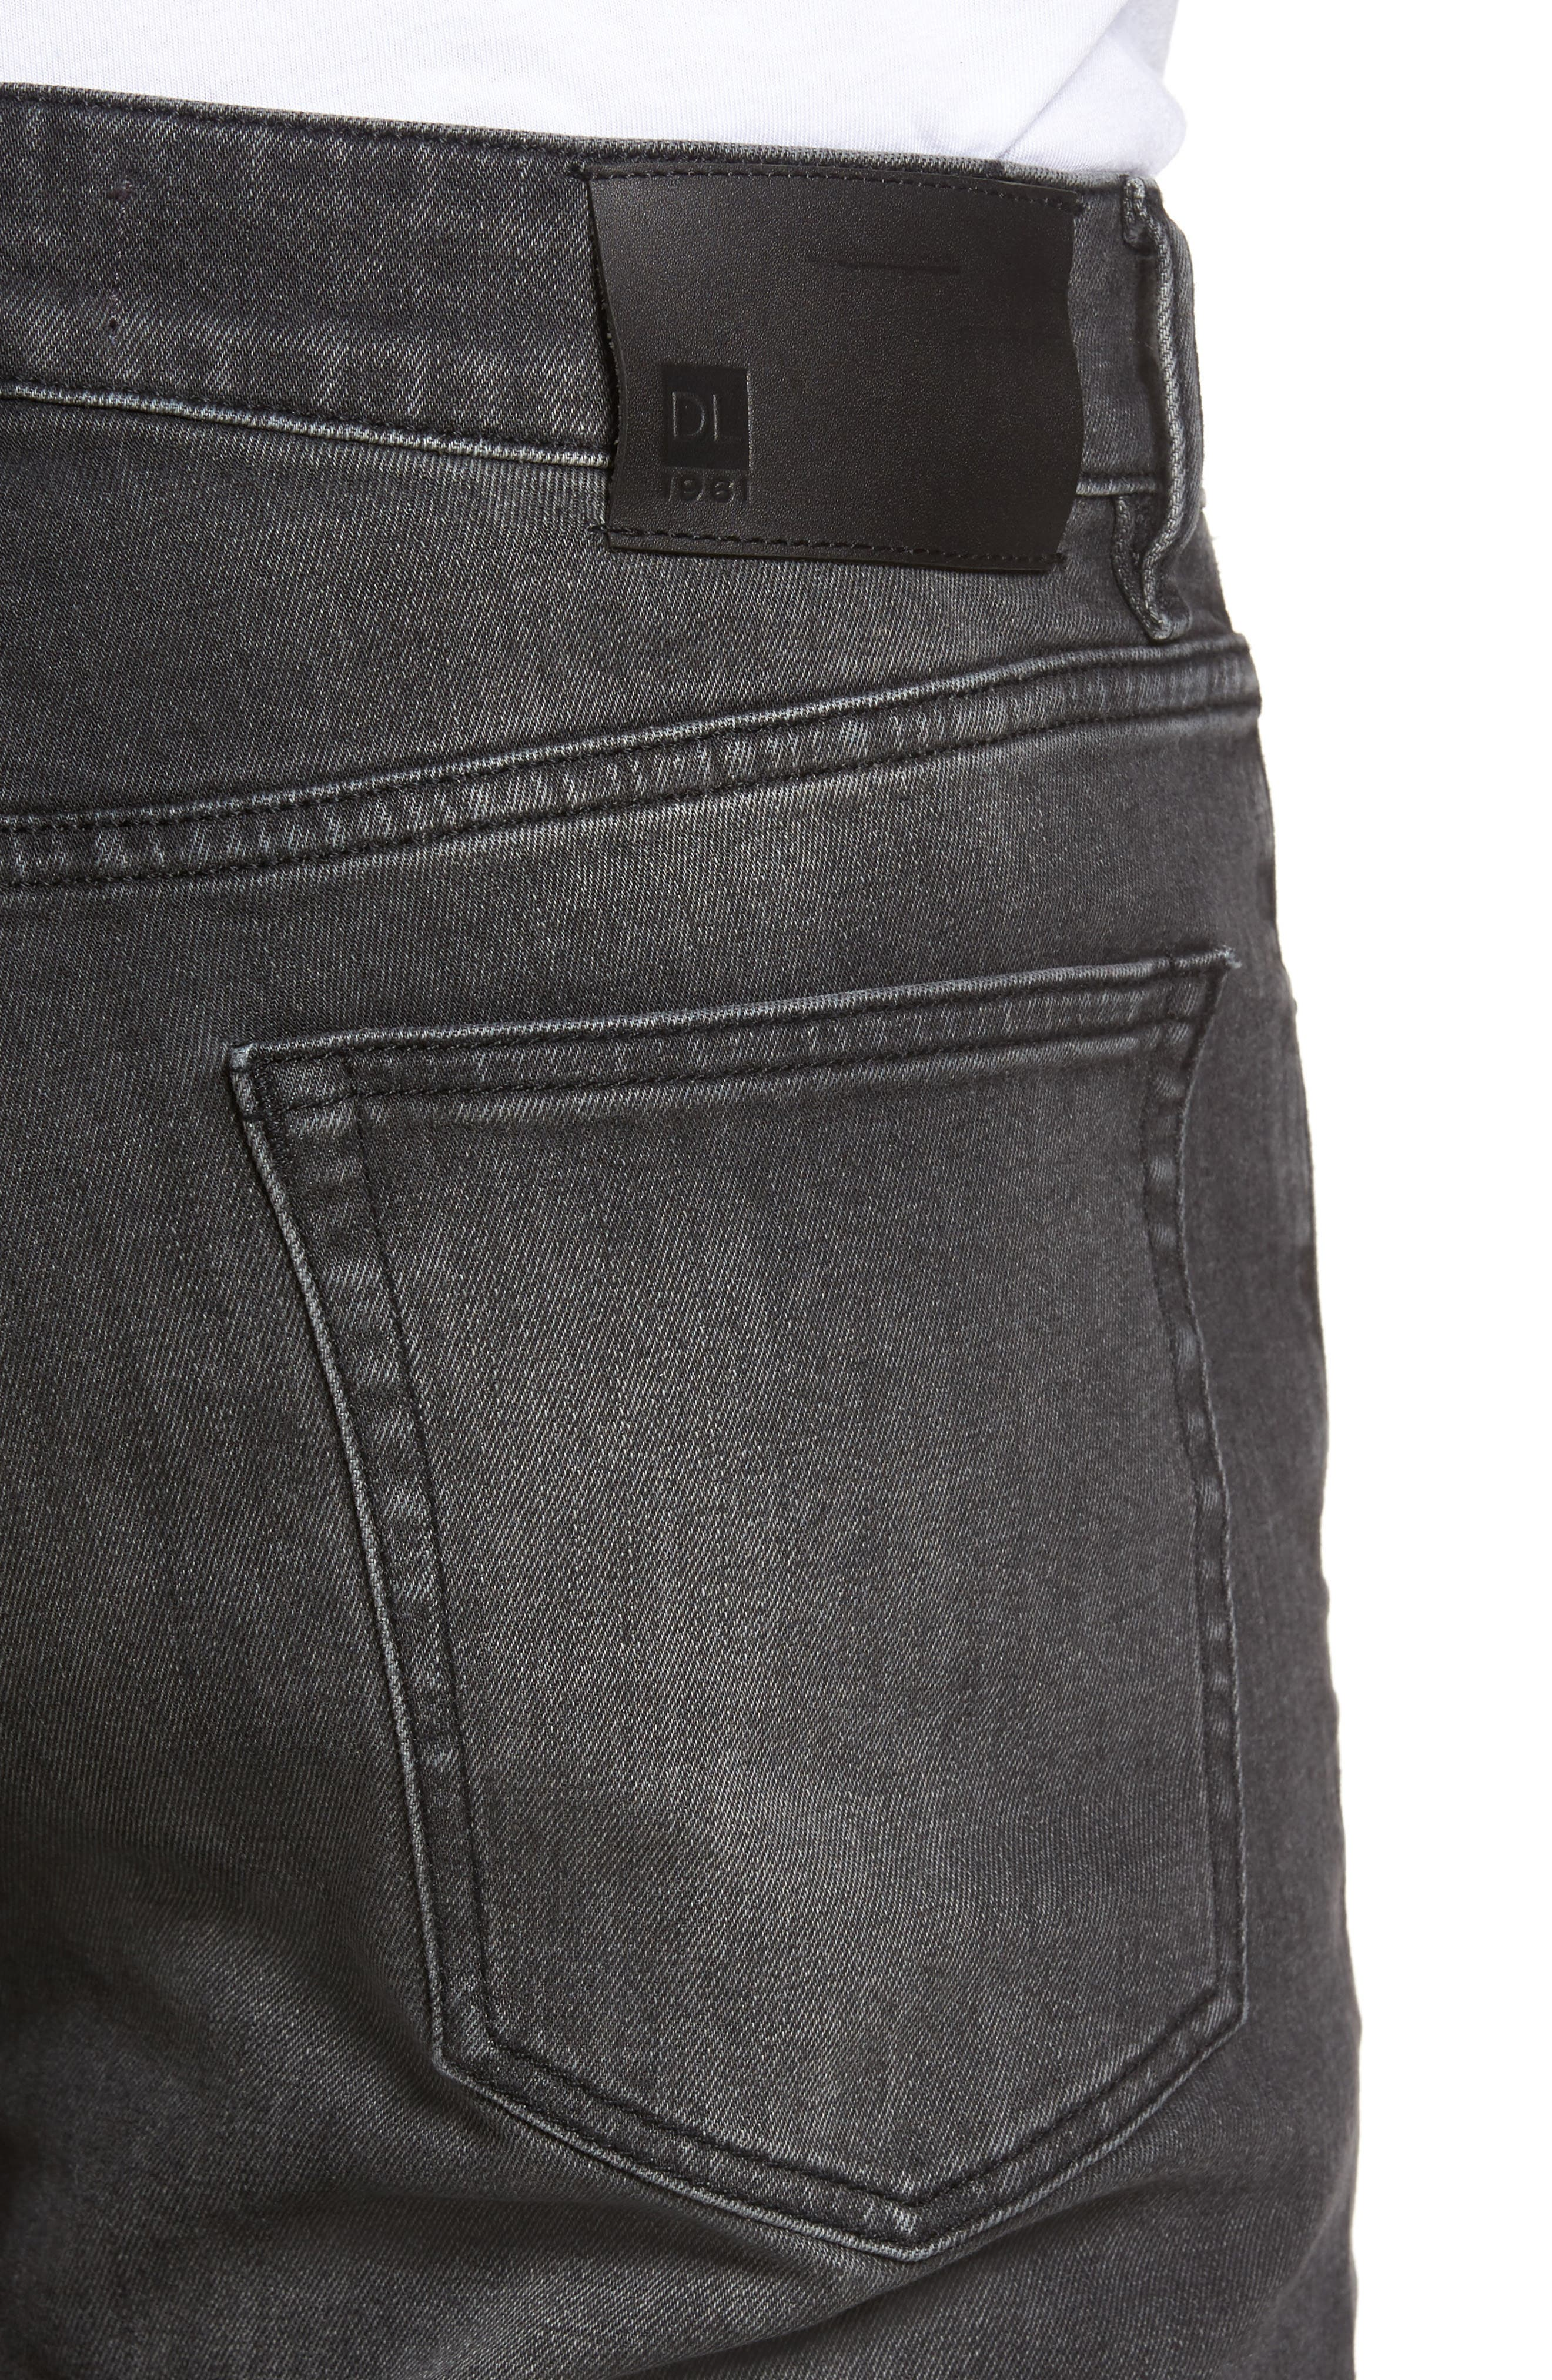 Russell Slim Straight Fit Jeans,                             Alternate thumbnail 4, color,                             020